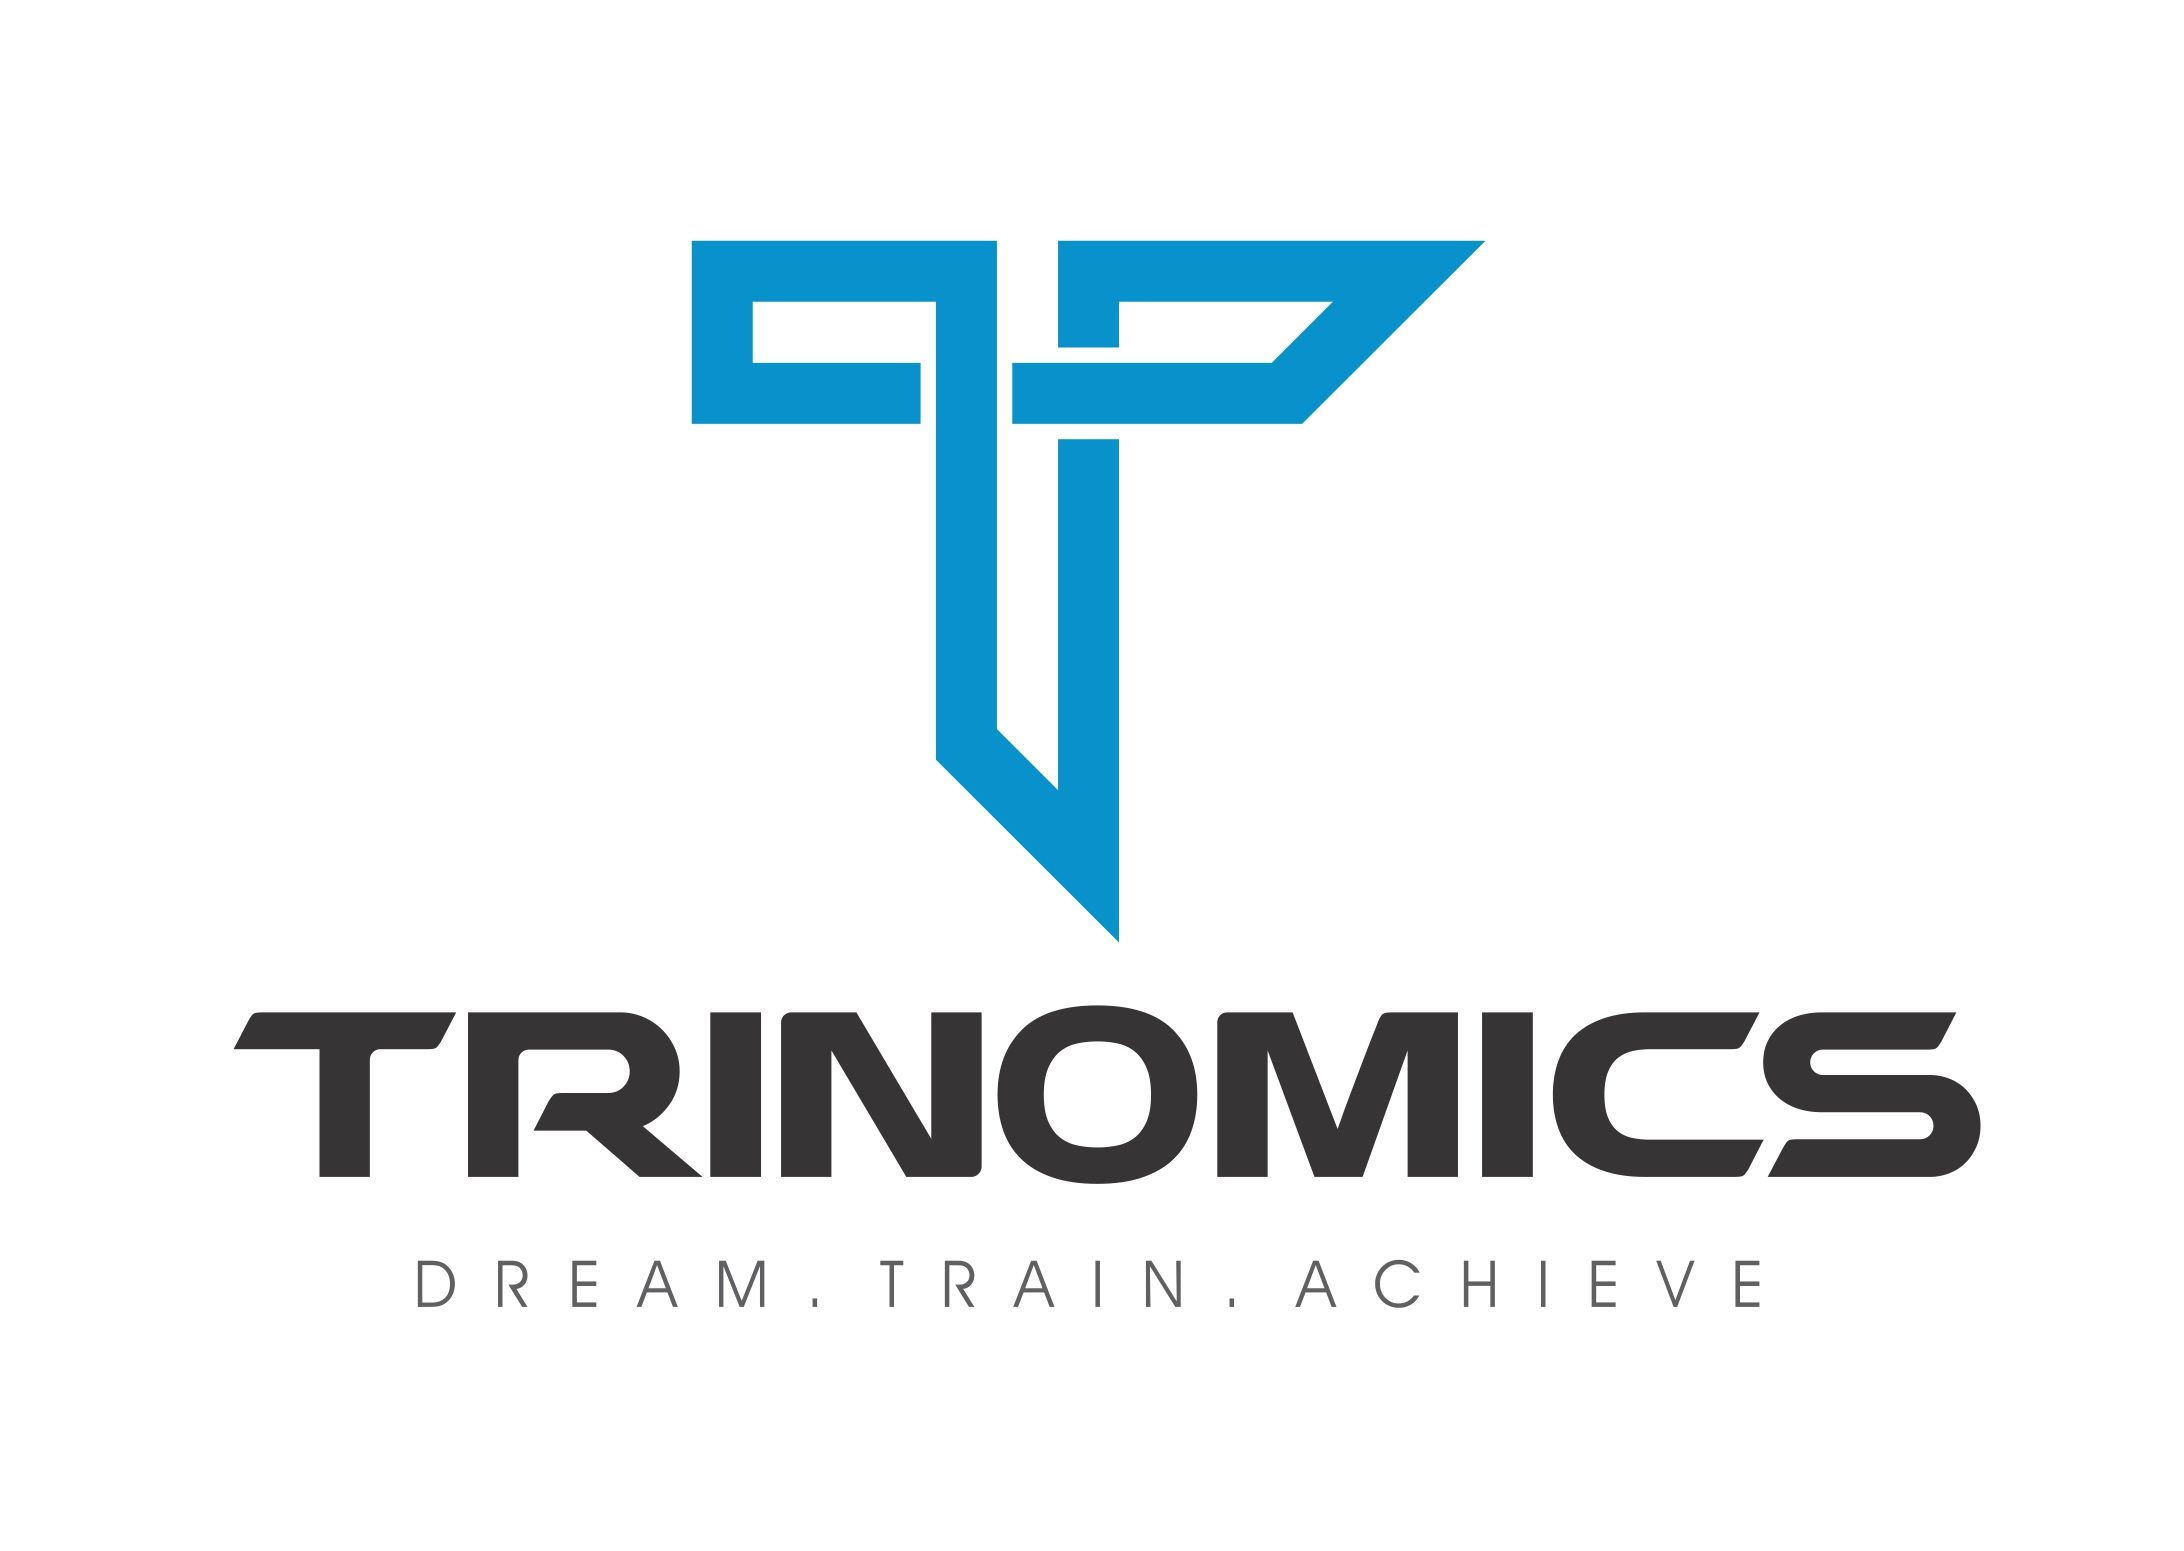 Trinomics – Dream . Train . Achieve